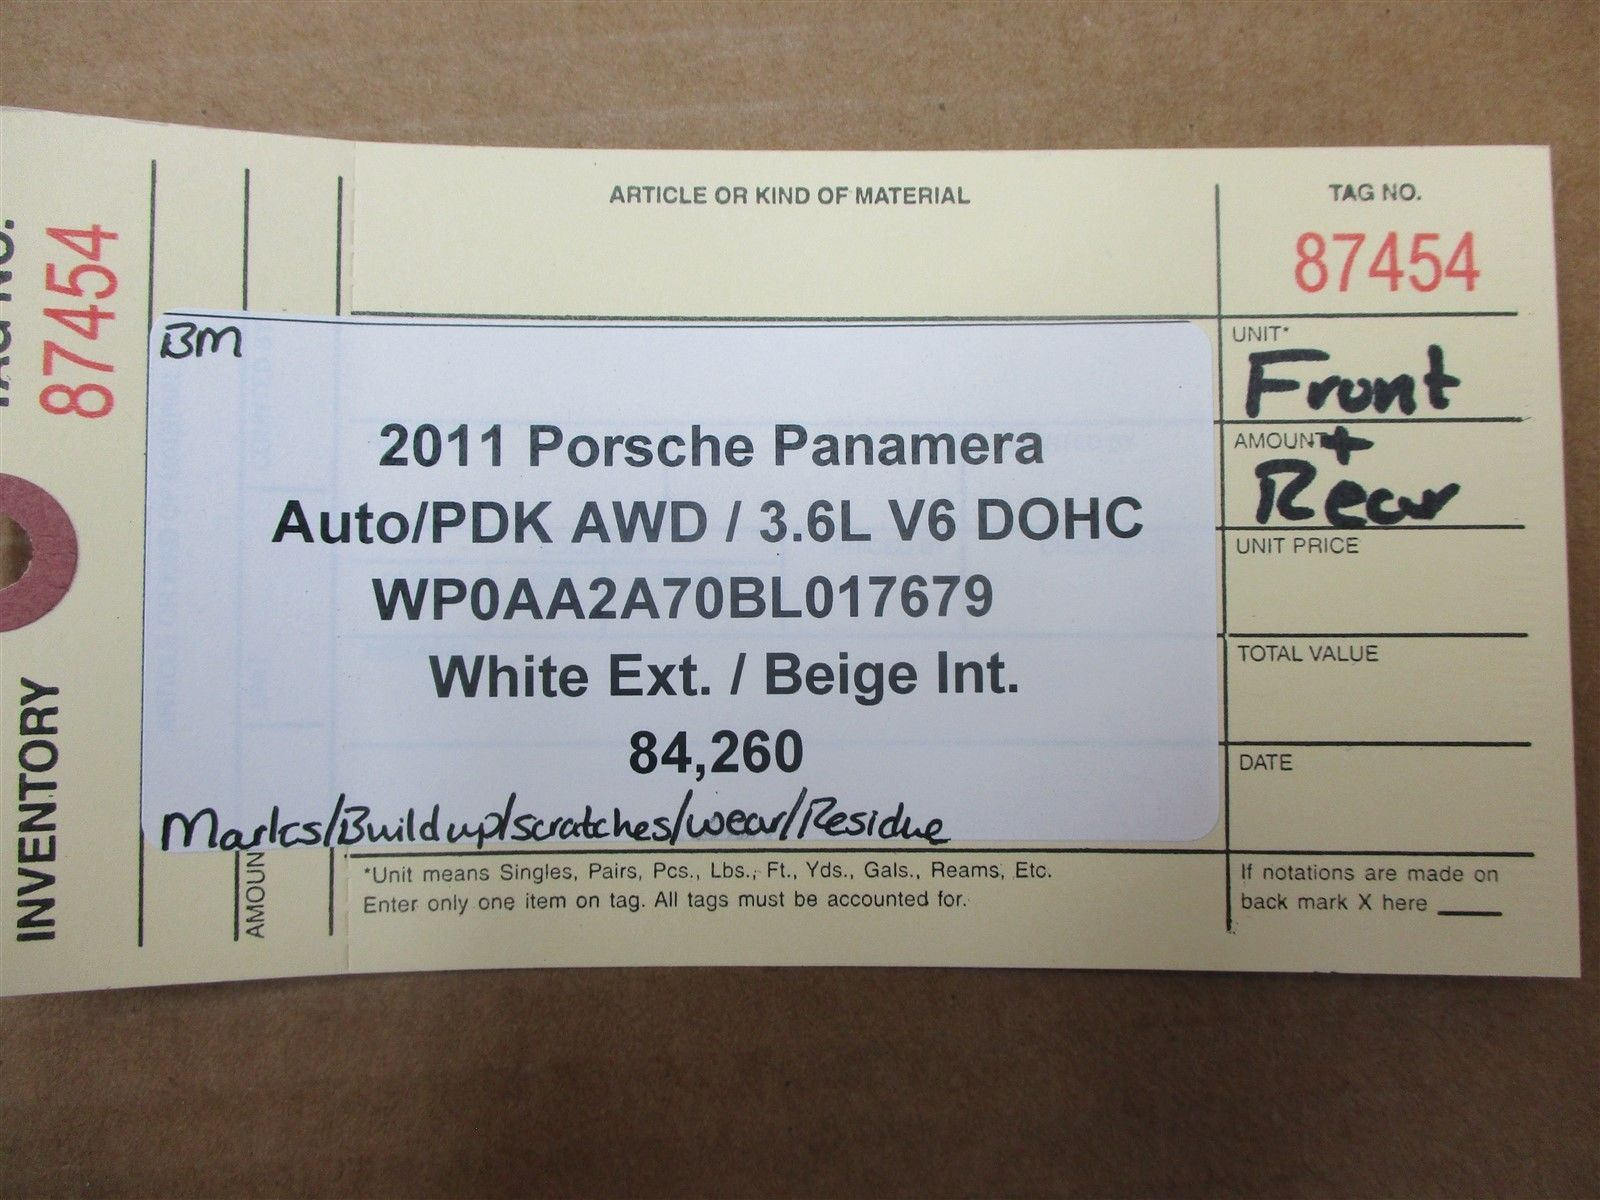 11 Panamera AWD 970 Porsche FRONT REAR INTERIOR ROOF TRIMS 970555608 84,260